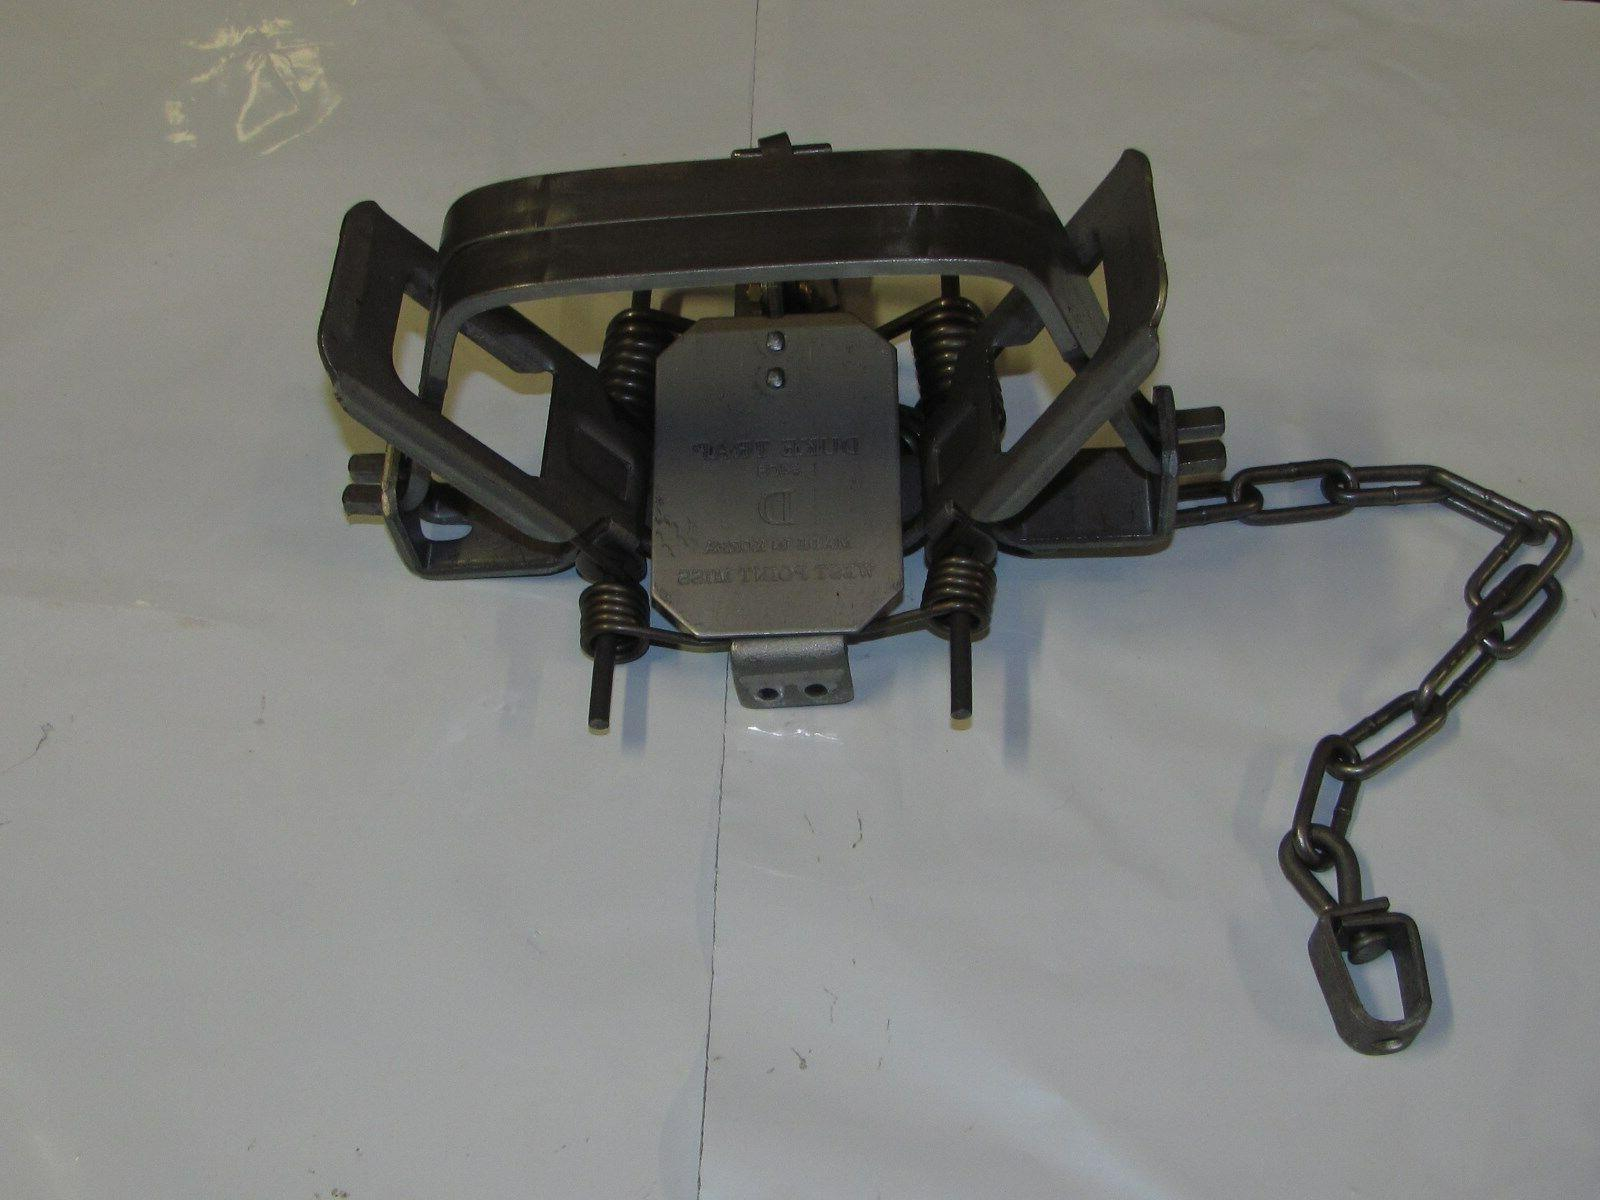 12 new 4 4x4 coil spring traps